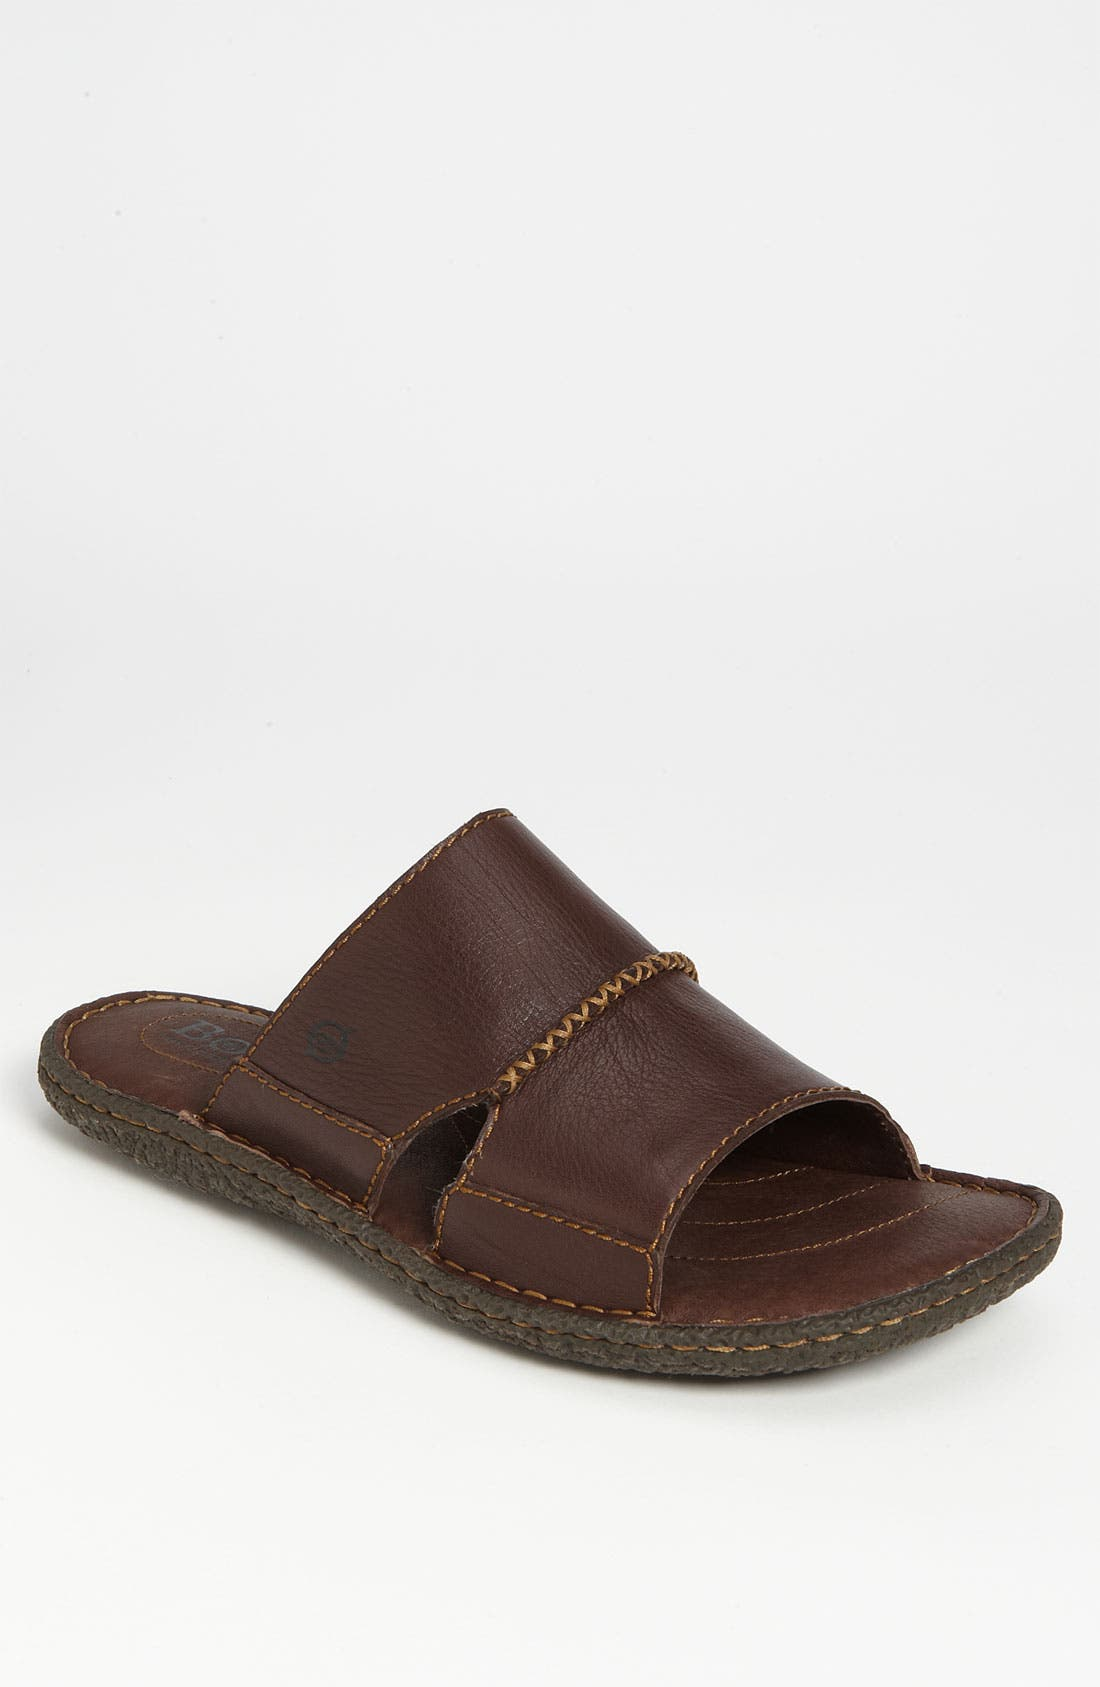 Alternate Image 1 Selected - Børn 'Gideon' Sandal